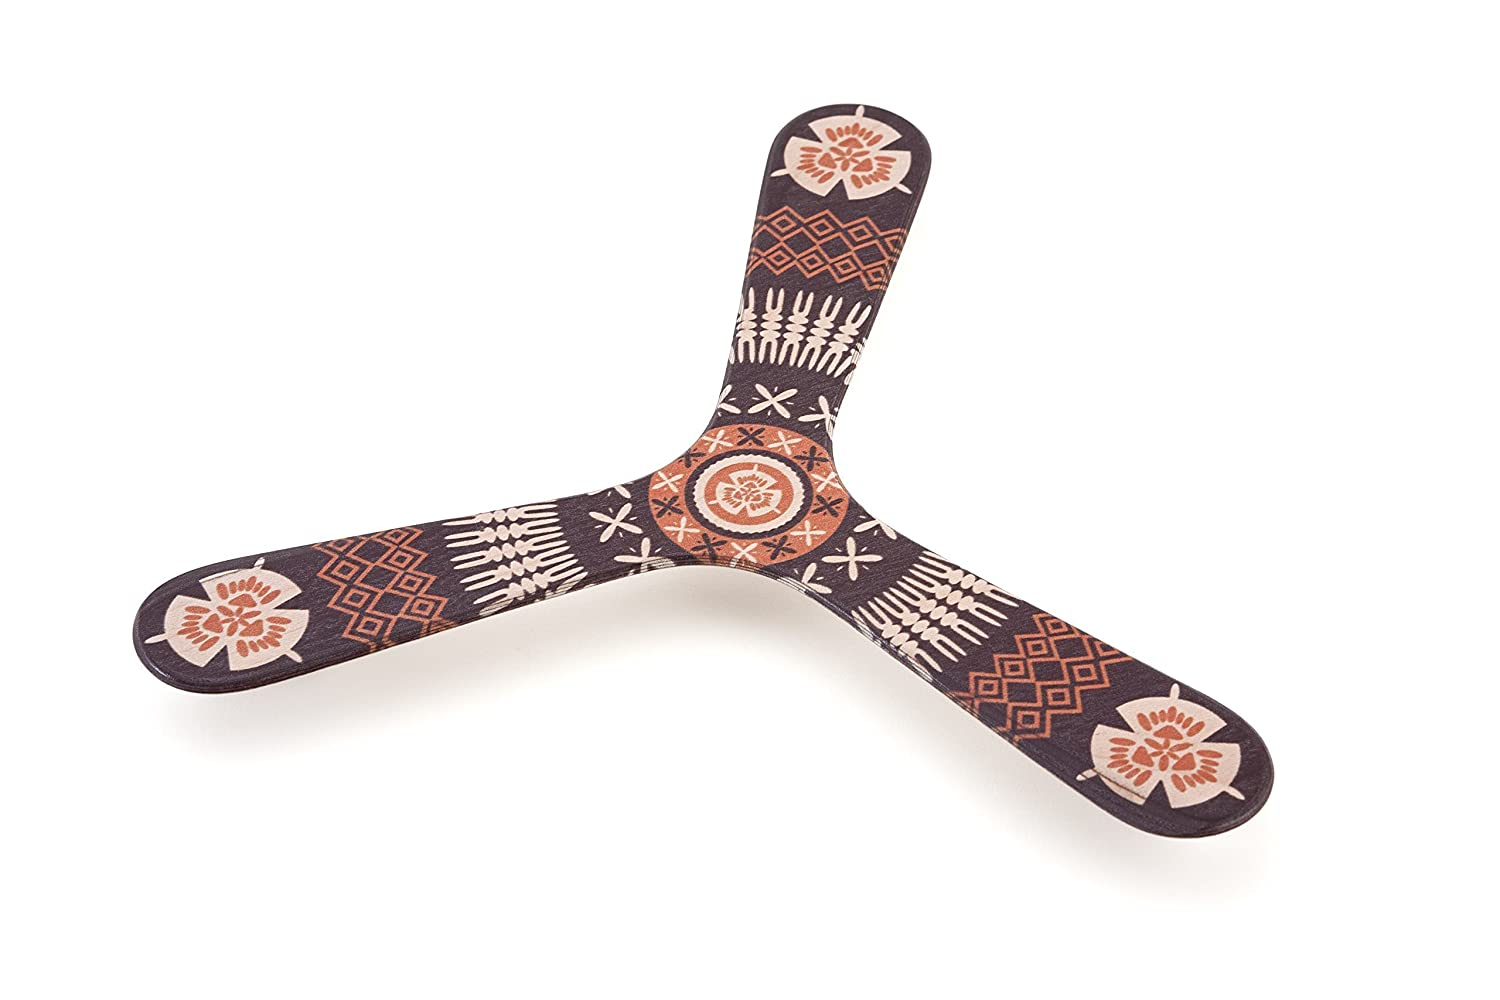 Fijian Island ethnics patterns, Handcrafted wooden boomerang for kids